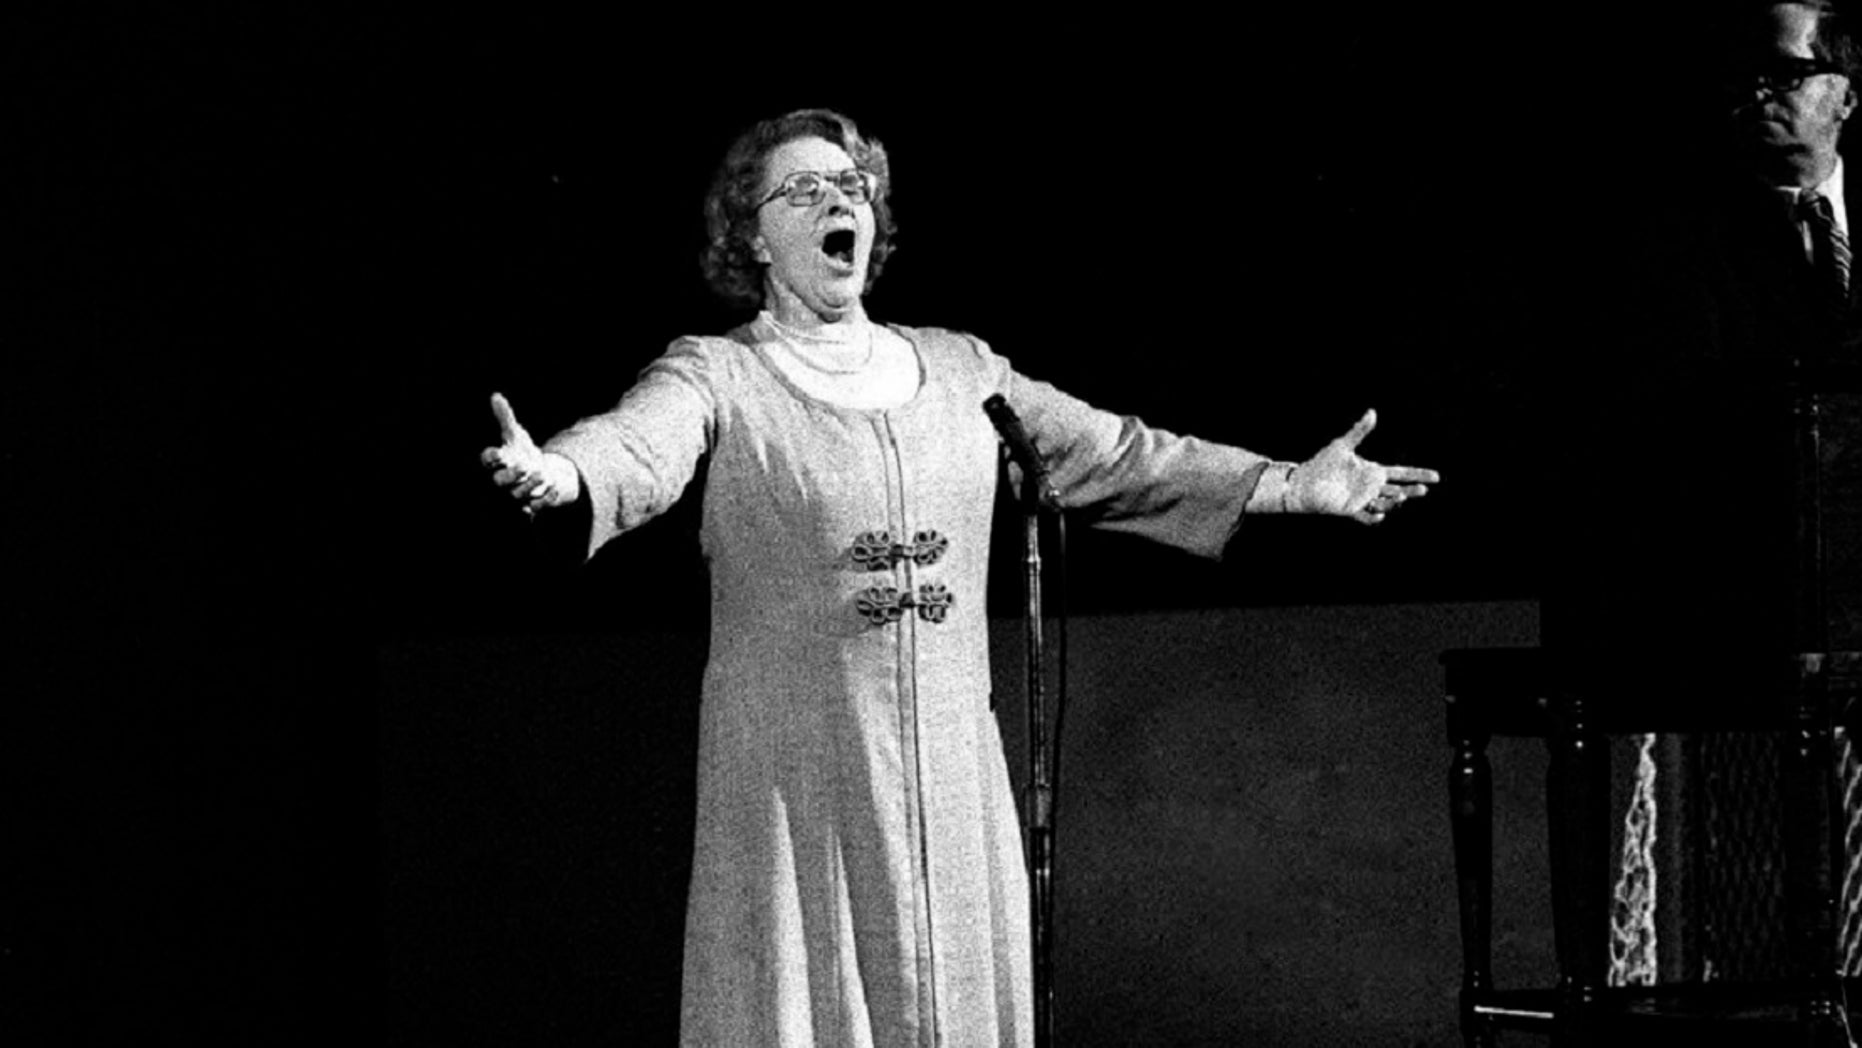 """The New York Yankees have suspended the use of Kate Smith's recording of """"God Bless America"""" during the seventh-inning stretch while they investigate an allegation of racism against the singer. (AP Photo, File)"""